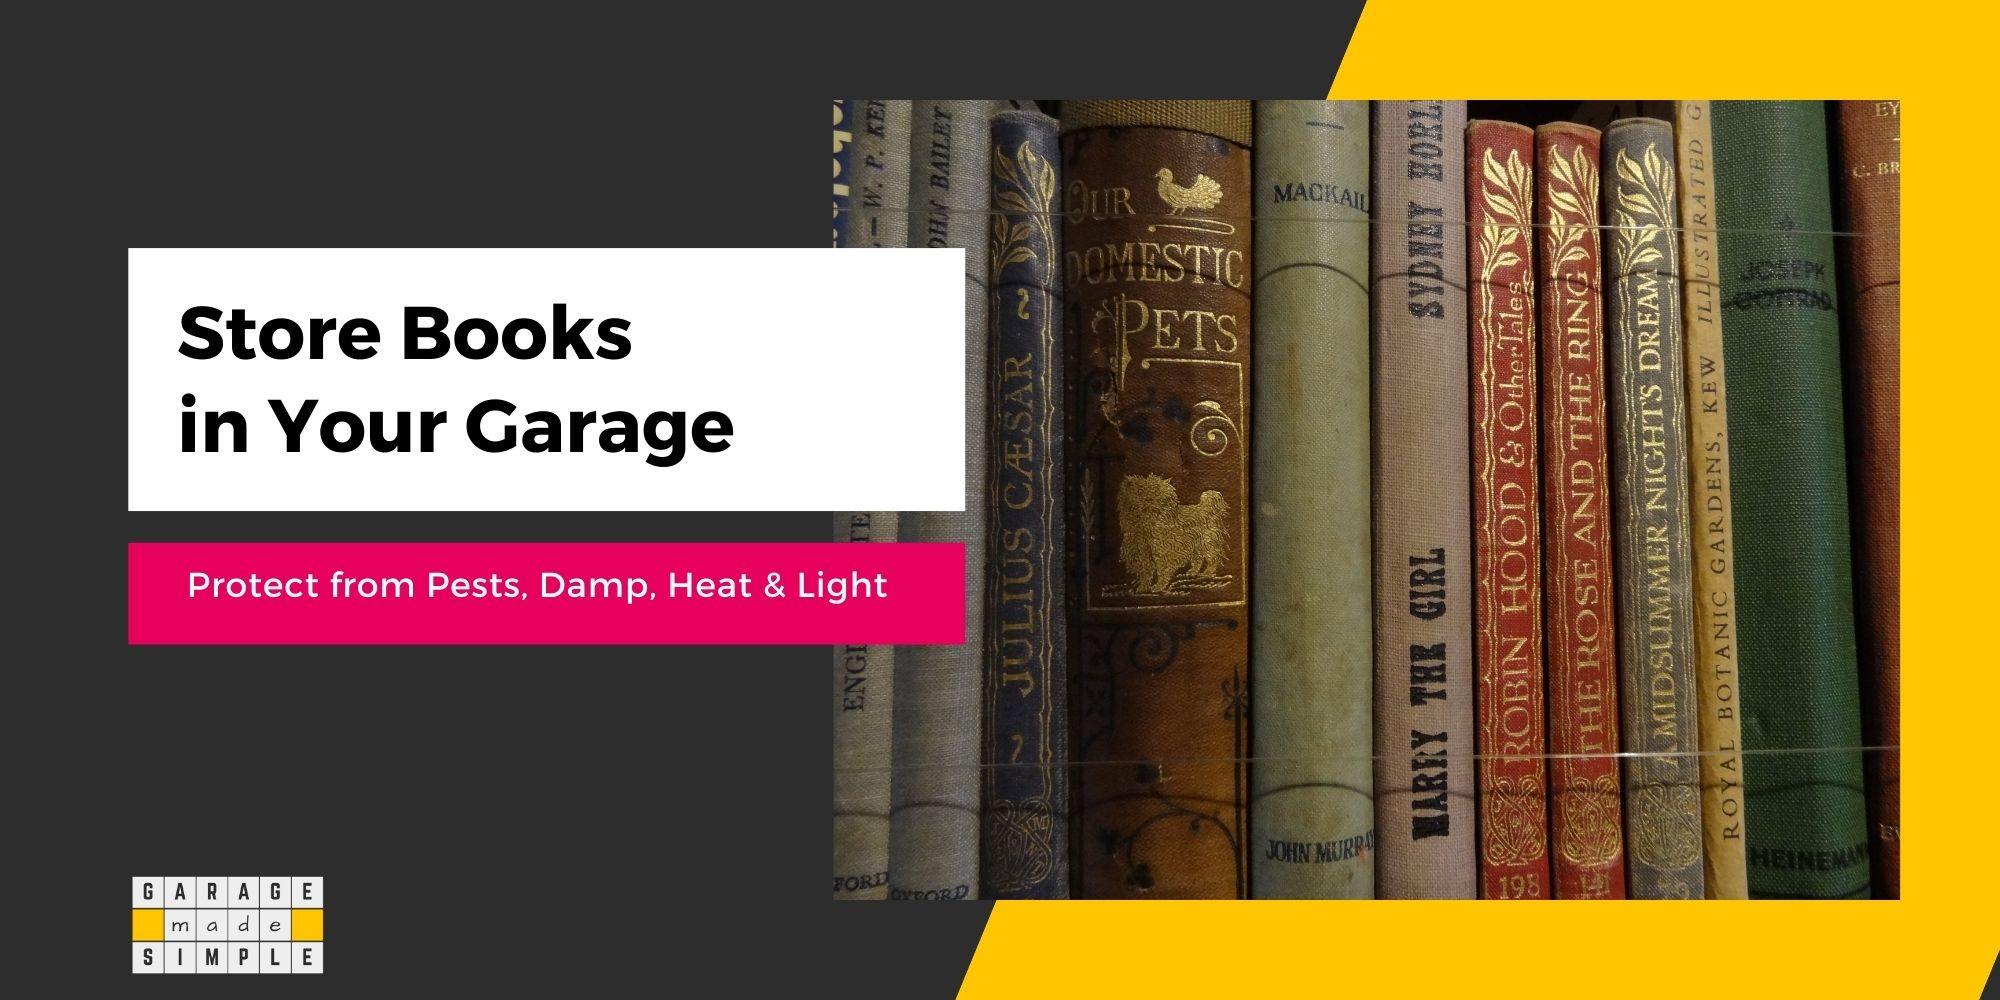 How To Store Books In Your Garage The Right Way!